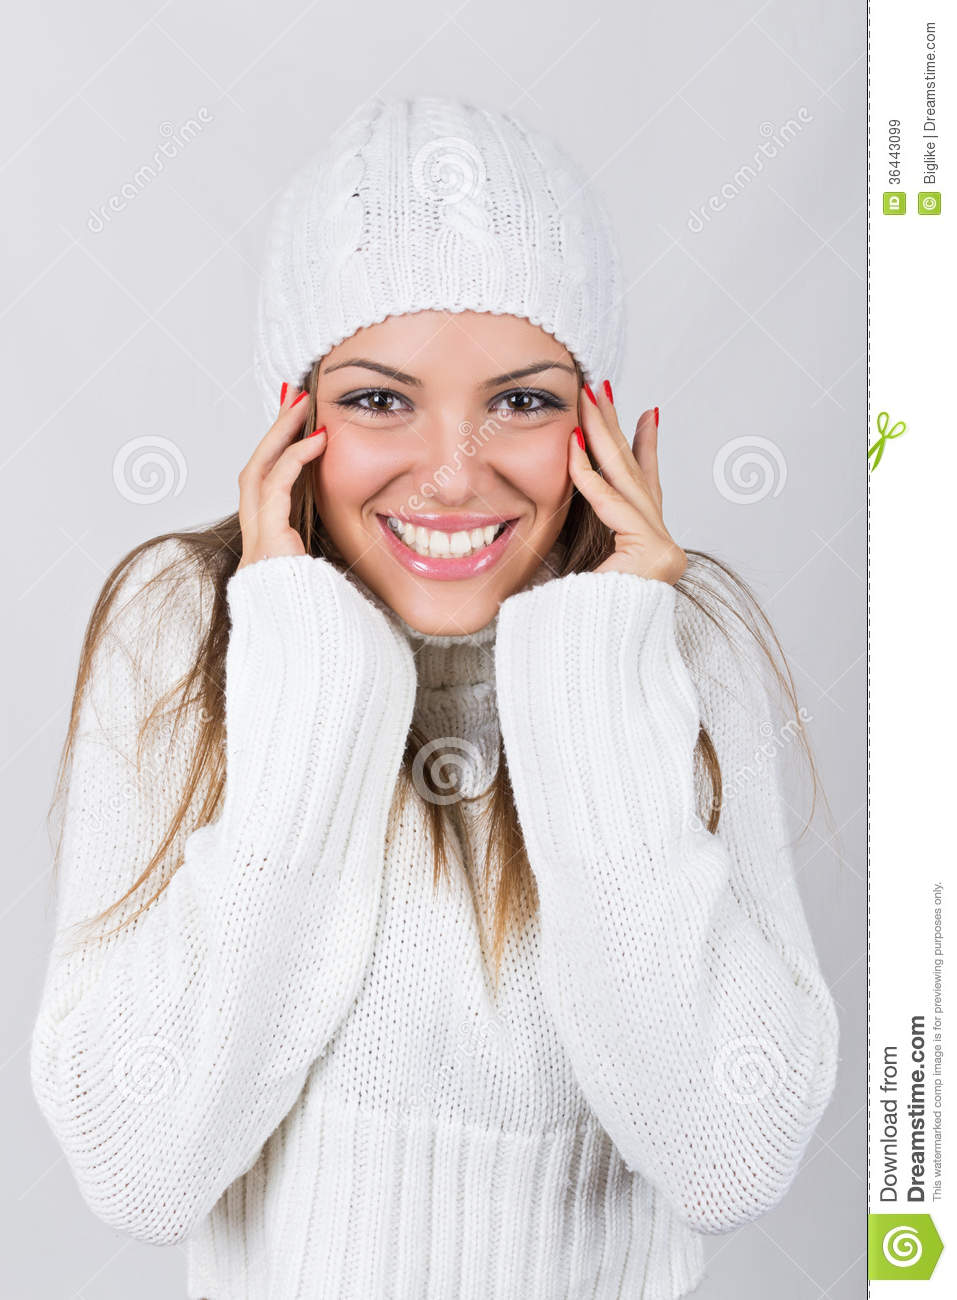 Beautiful Teenage Girl Wearing White Beanie Hat And Sweater Stock ... 7228a4f55d2